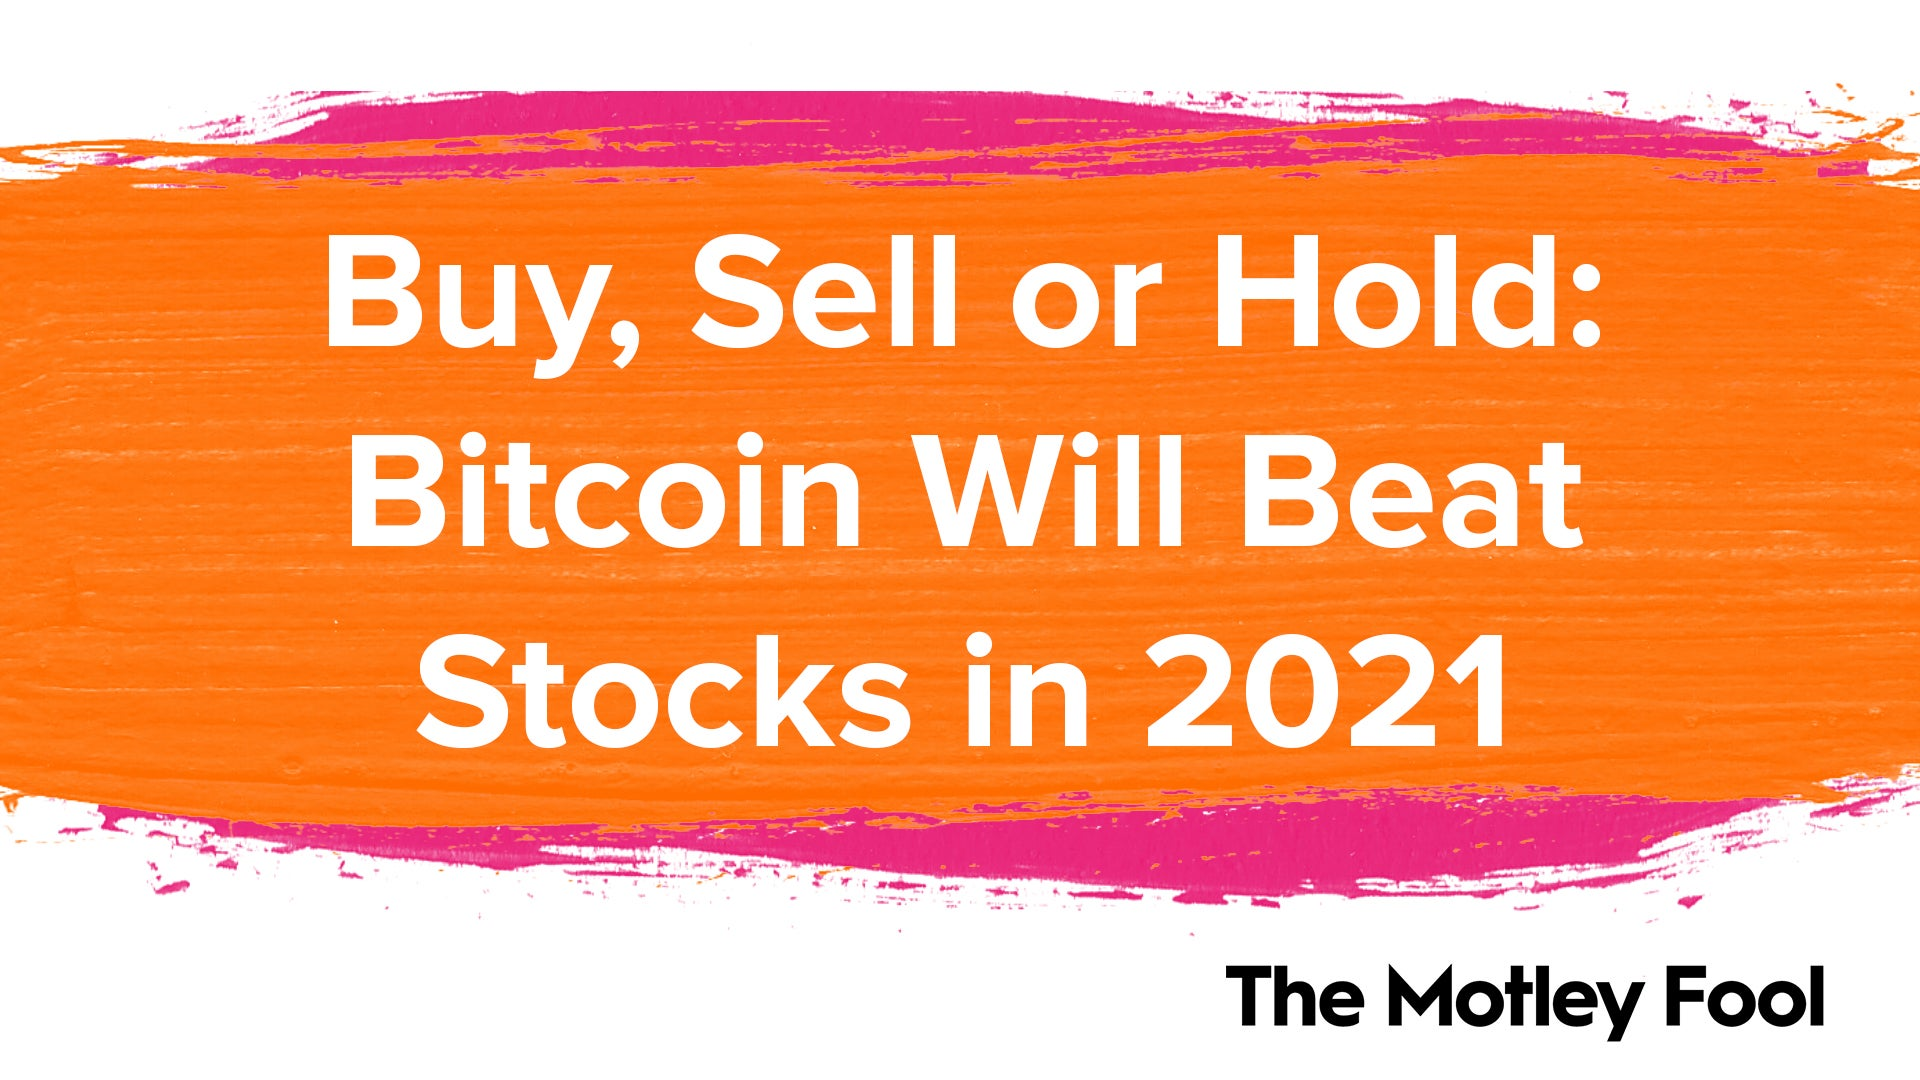 Buy, Sell, or Hold: Bitcoin Will Beat Stocks in 2021